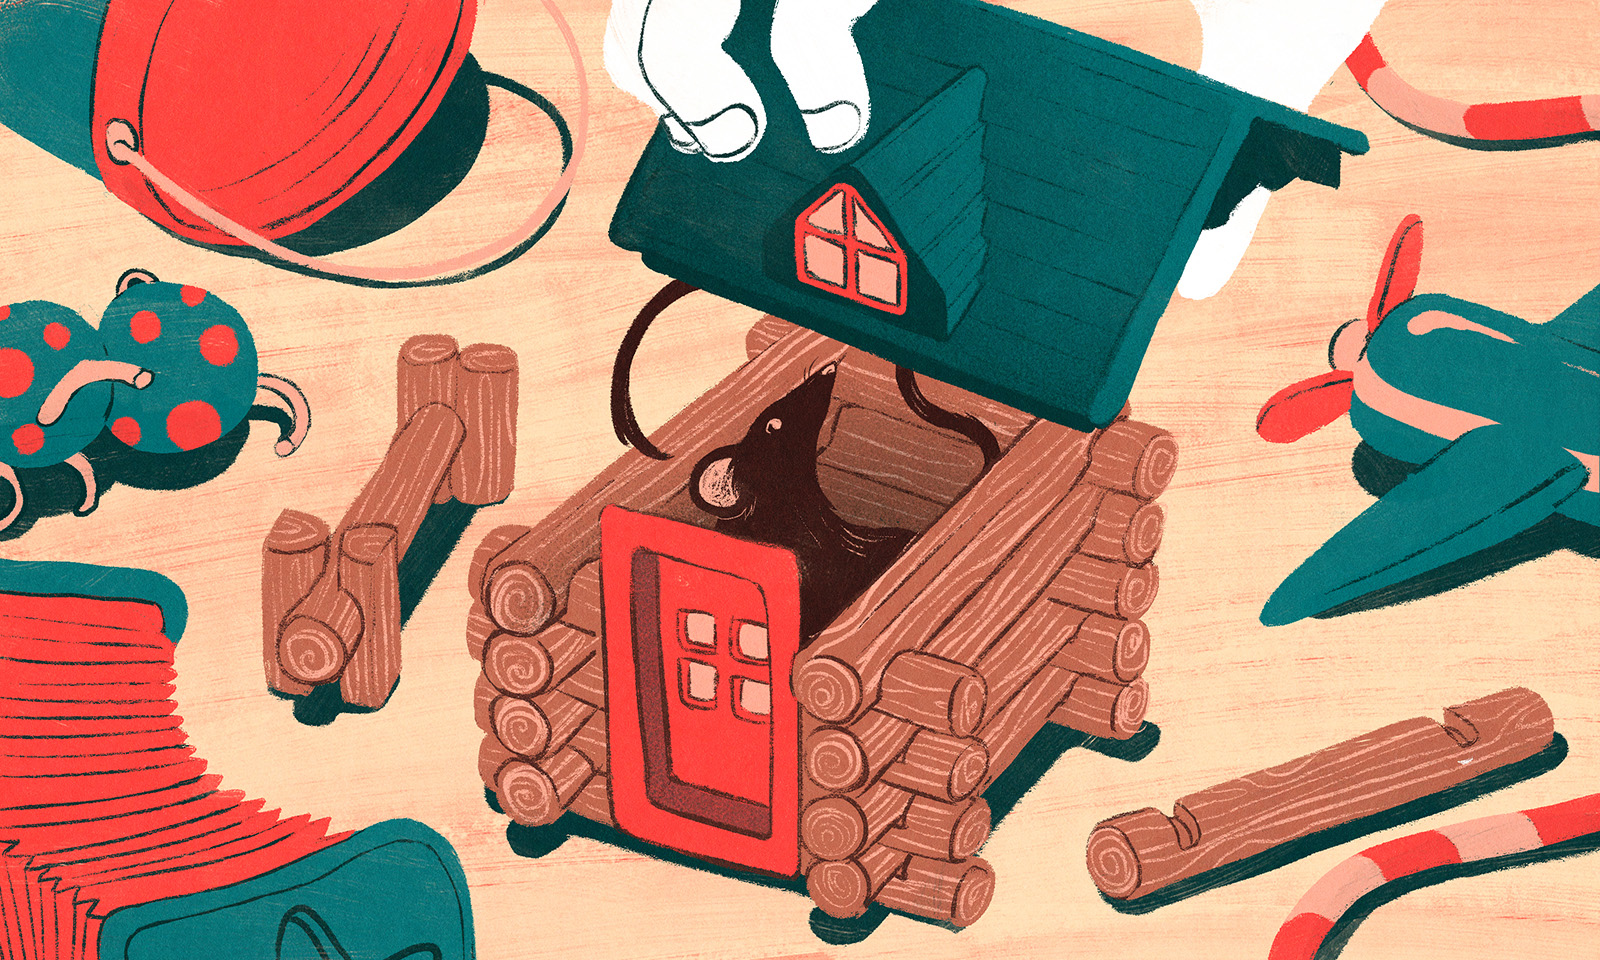 "LIFEHACKER, <a href=""http://lifehacker.com/what-to-do-when-mice-have-invaded-your-home-1786347063"" target=""_blank"">What to Do When Mice Have Invaded Your Home</a>"